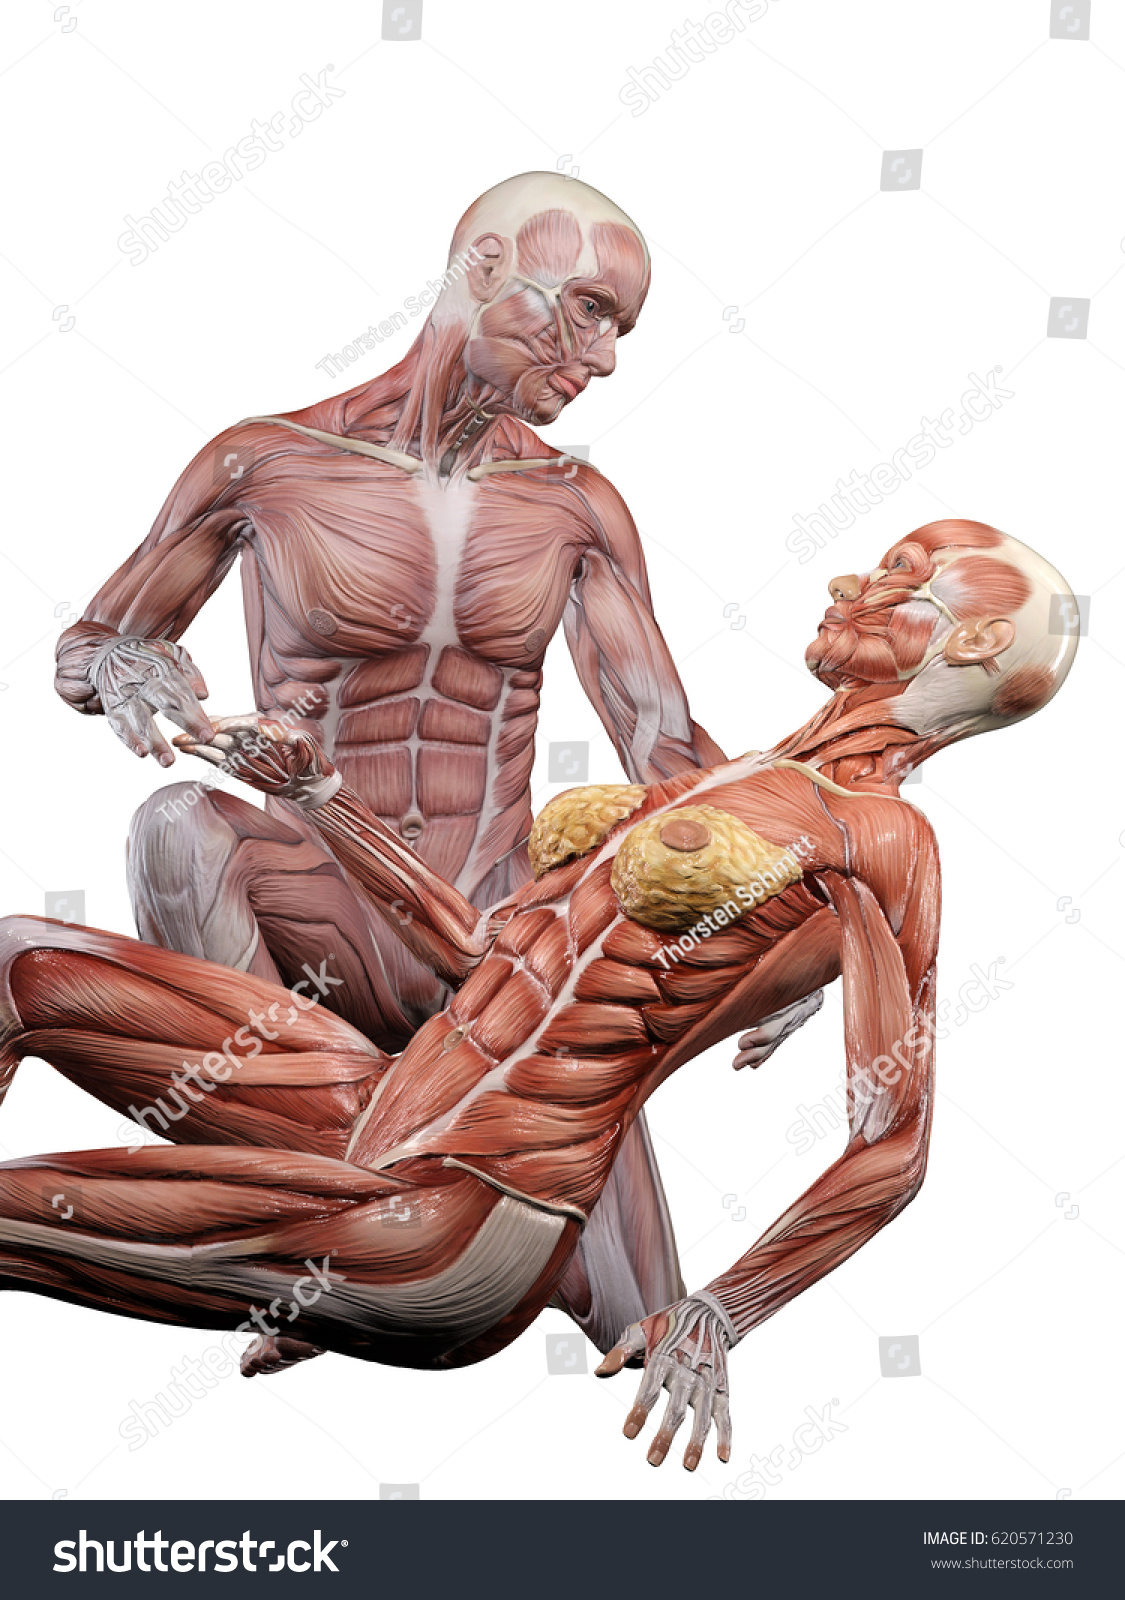 Male Muscle Anatomy Takes Care Female Stock Illustration 620571230